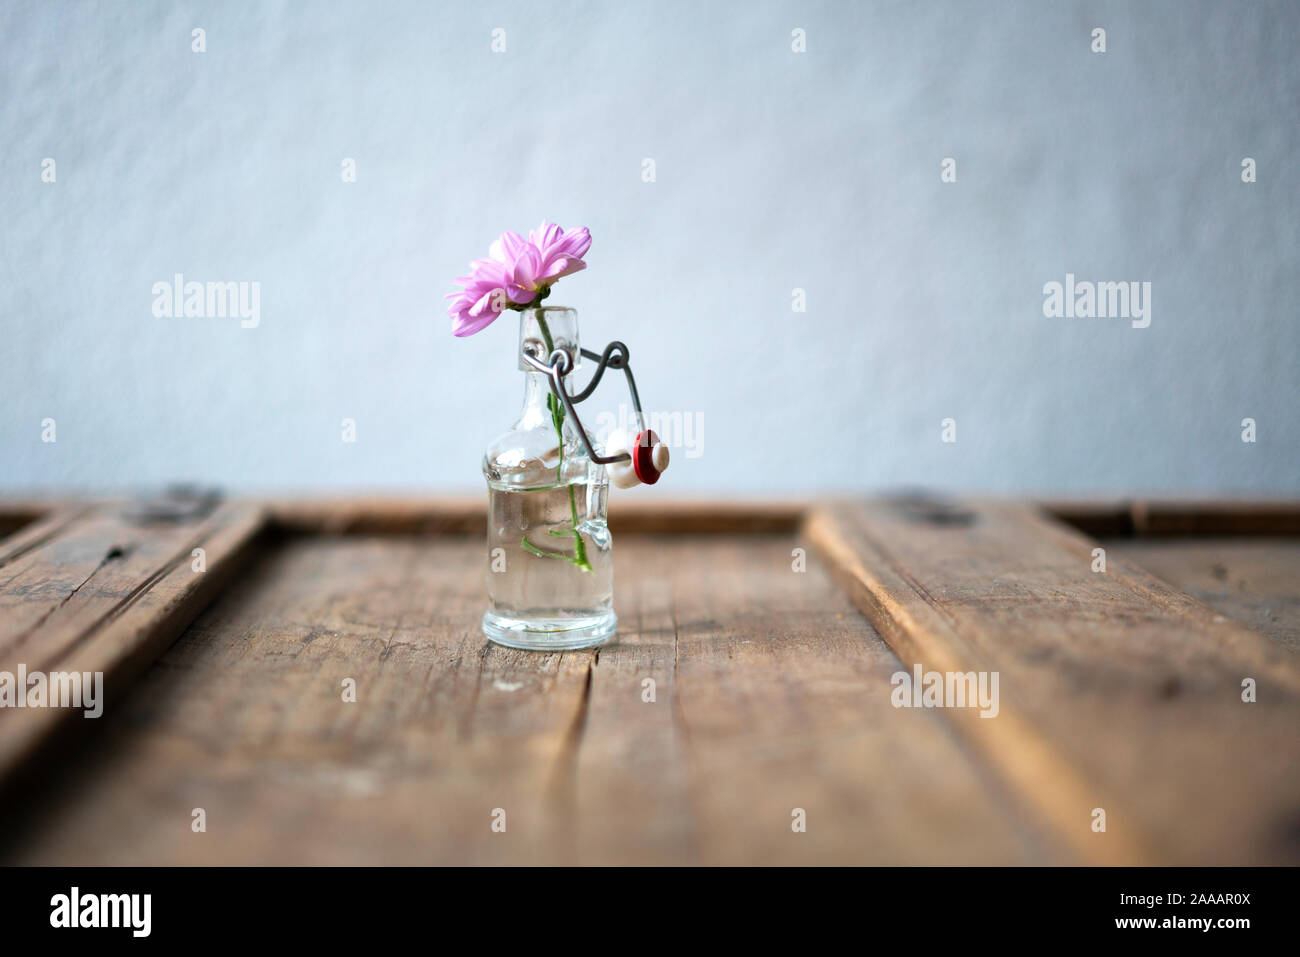 Detail of a pink aster in a small glass bottle on a cracky shabby stylish wooden furniture in front of a white wall Stock Photo